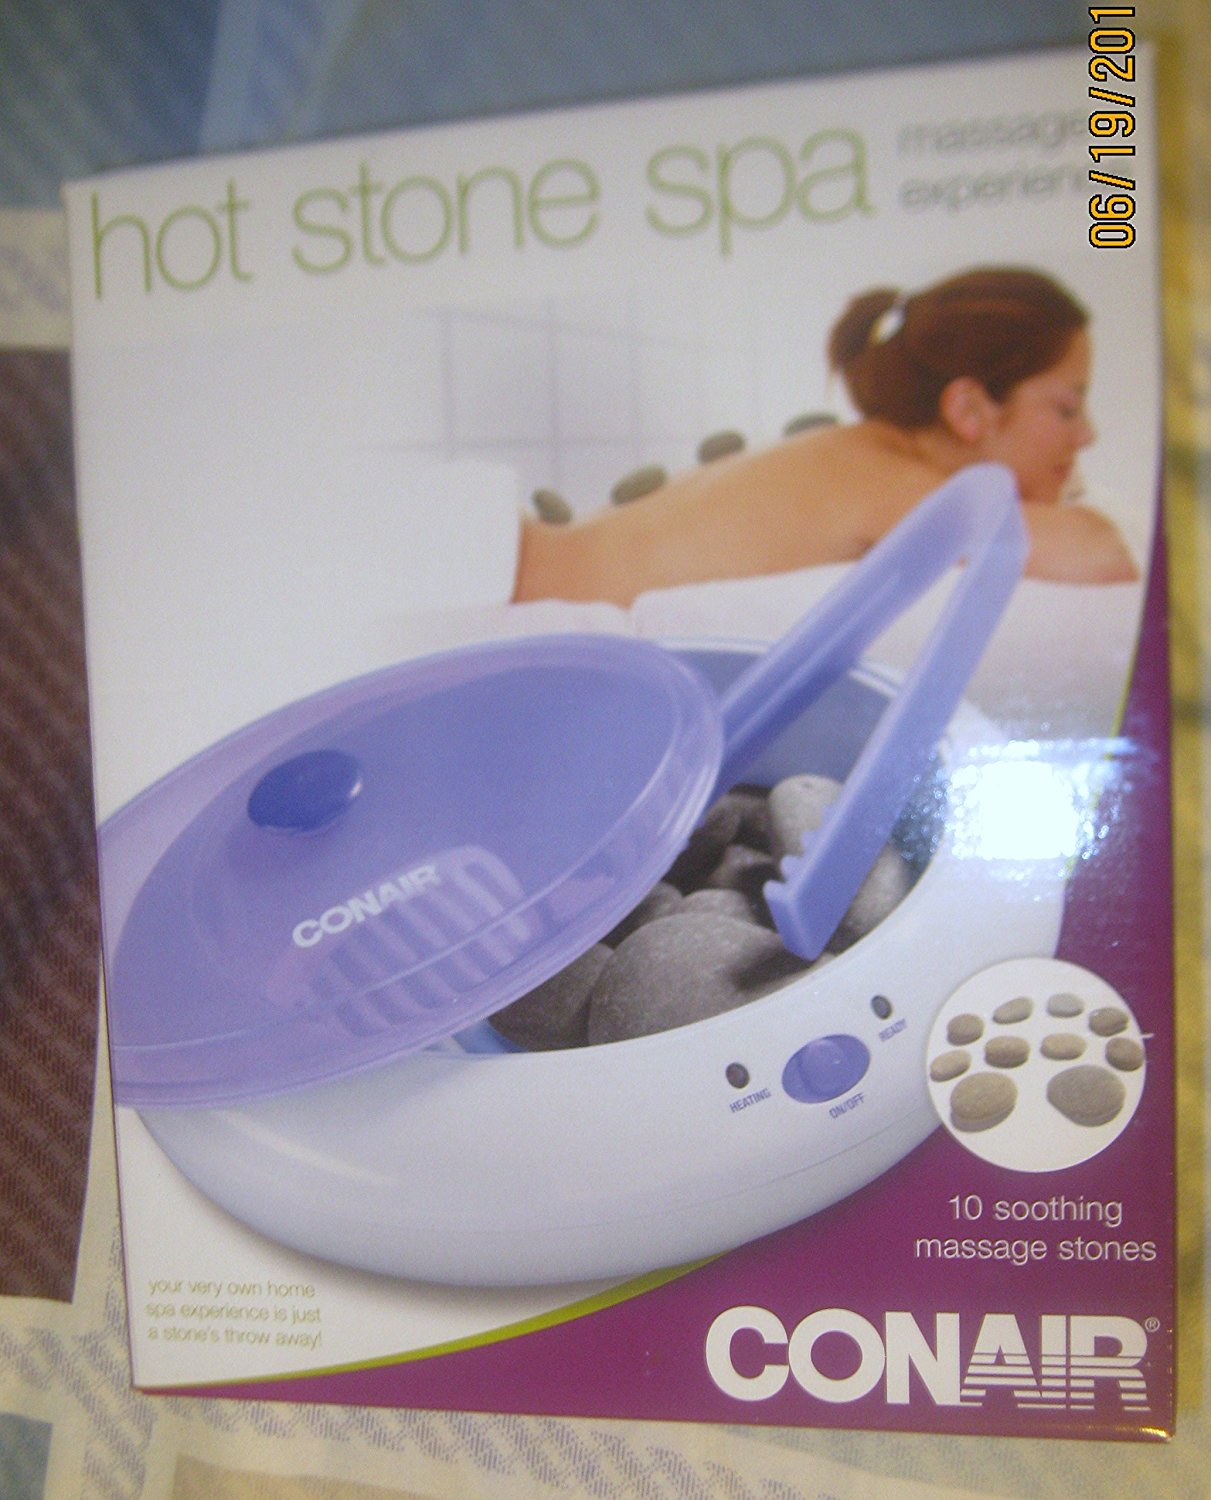 Cheap Conair Spa, find Conair Spa deals on line at Alibaba.com